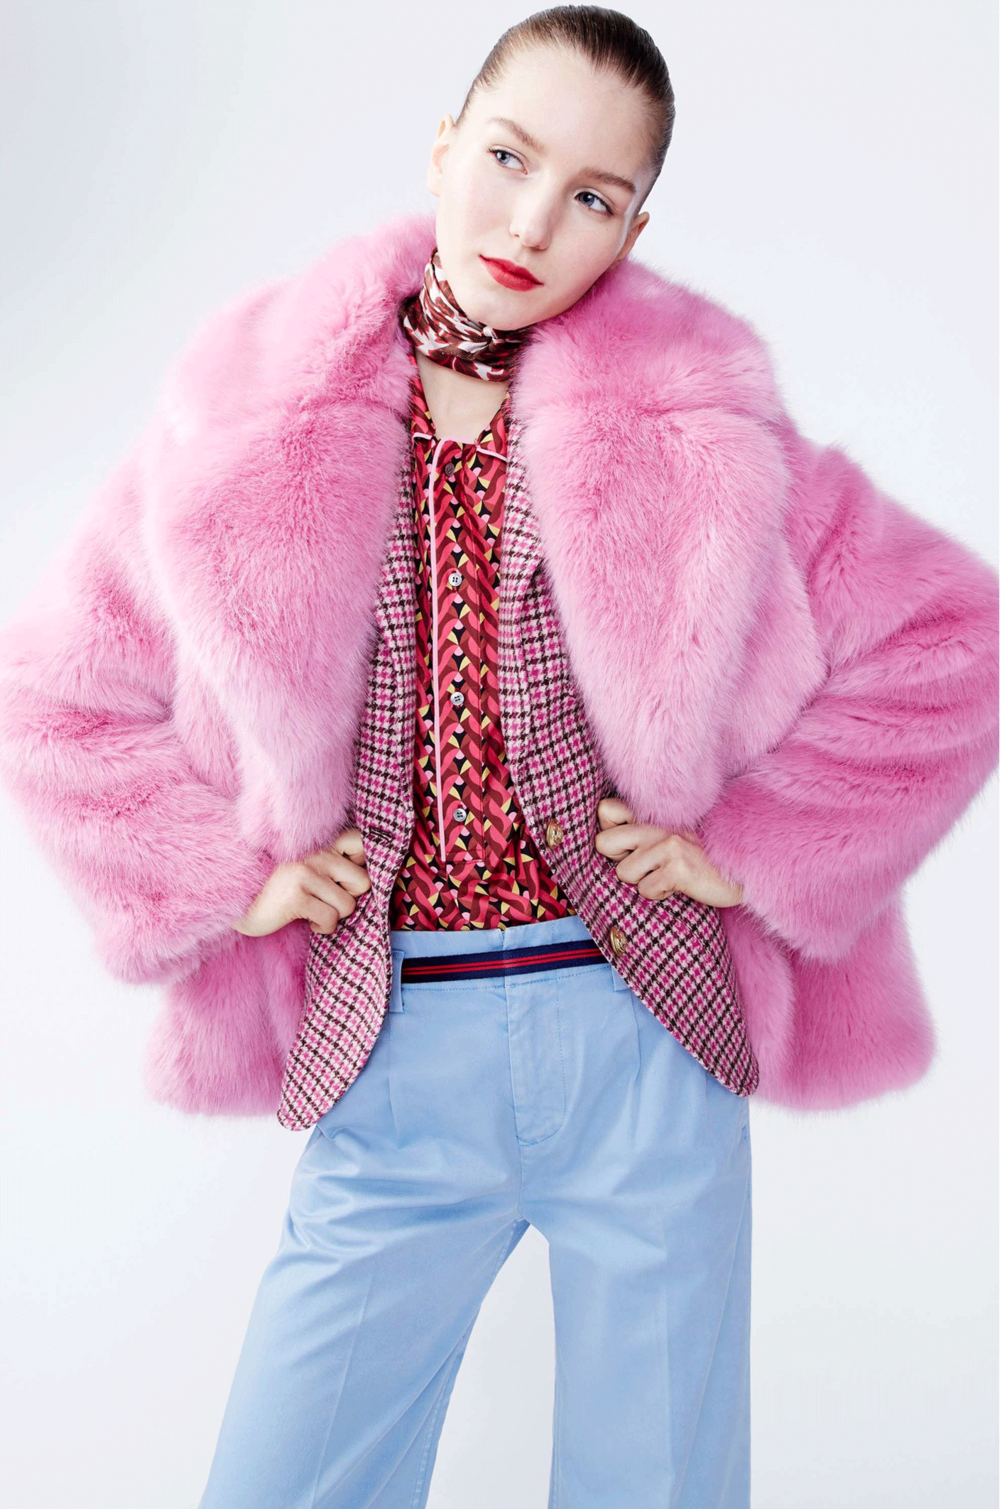 THE COLLECTION WITH THE BUBBLEGUM PINK FAUX FUR JACKET — MISS PRINTS